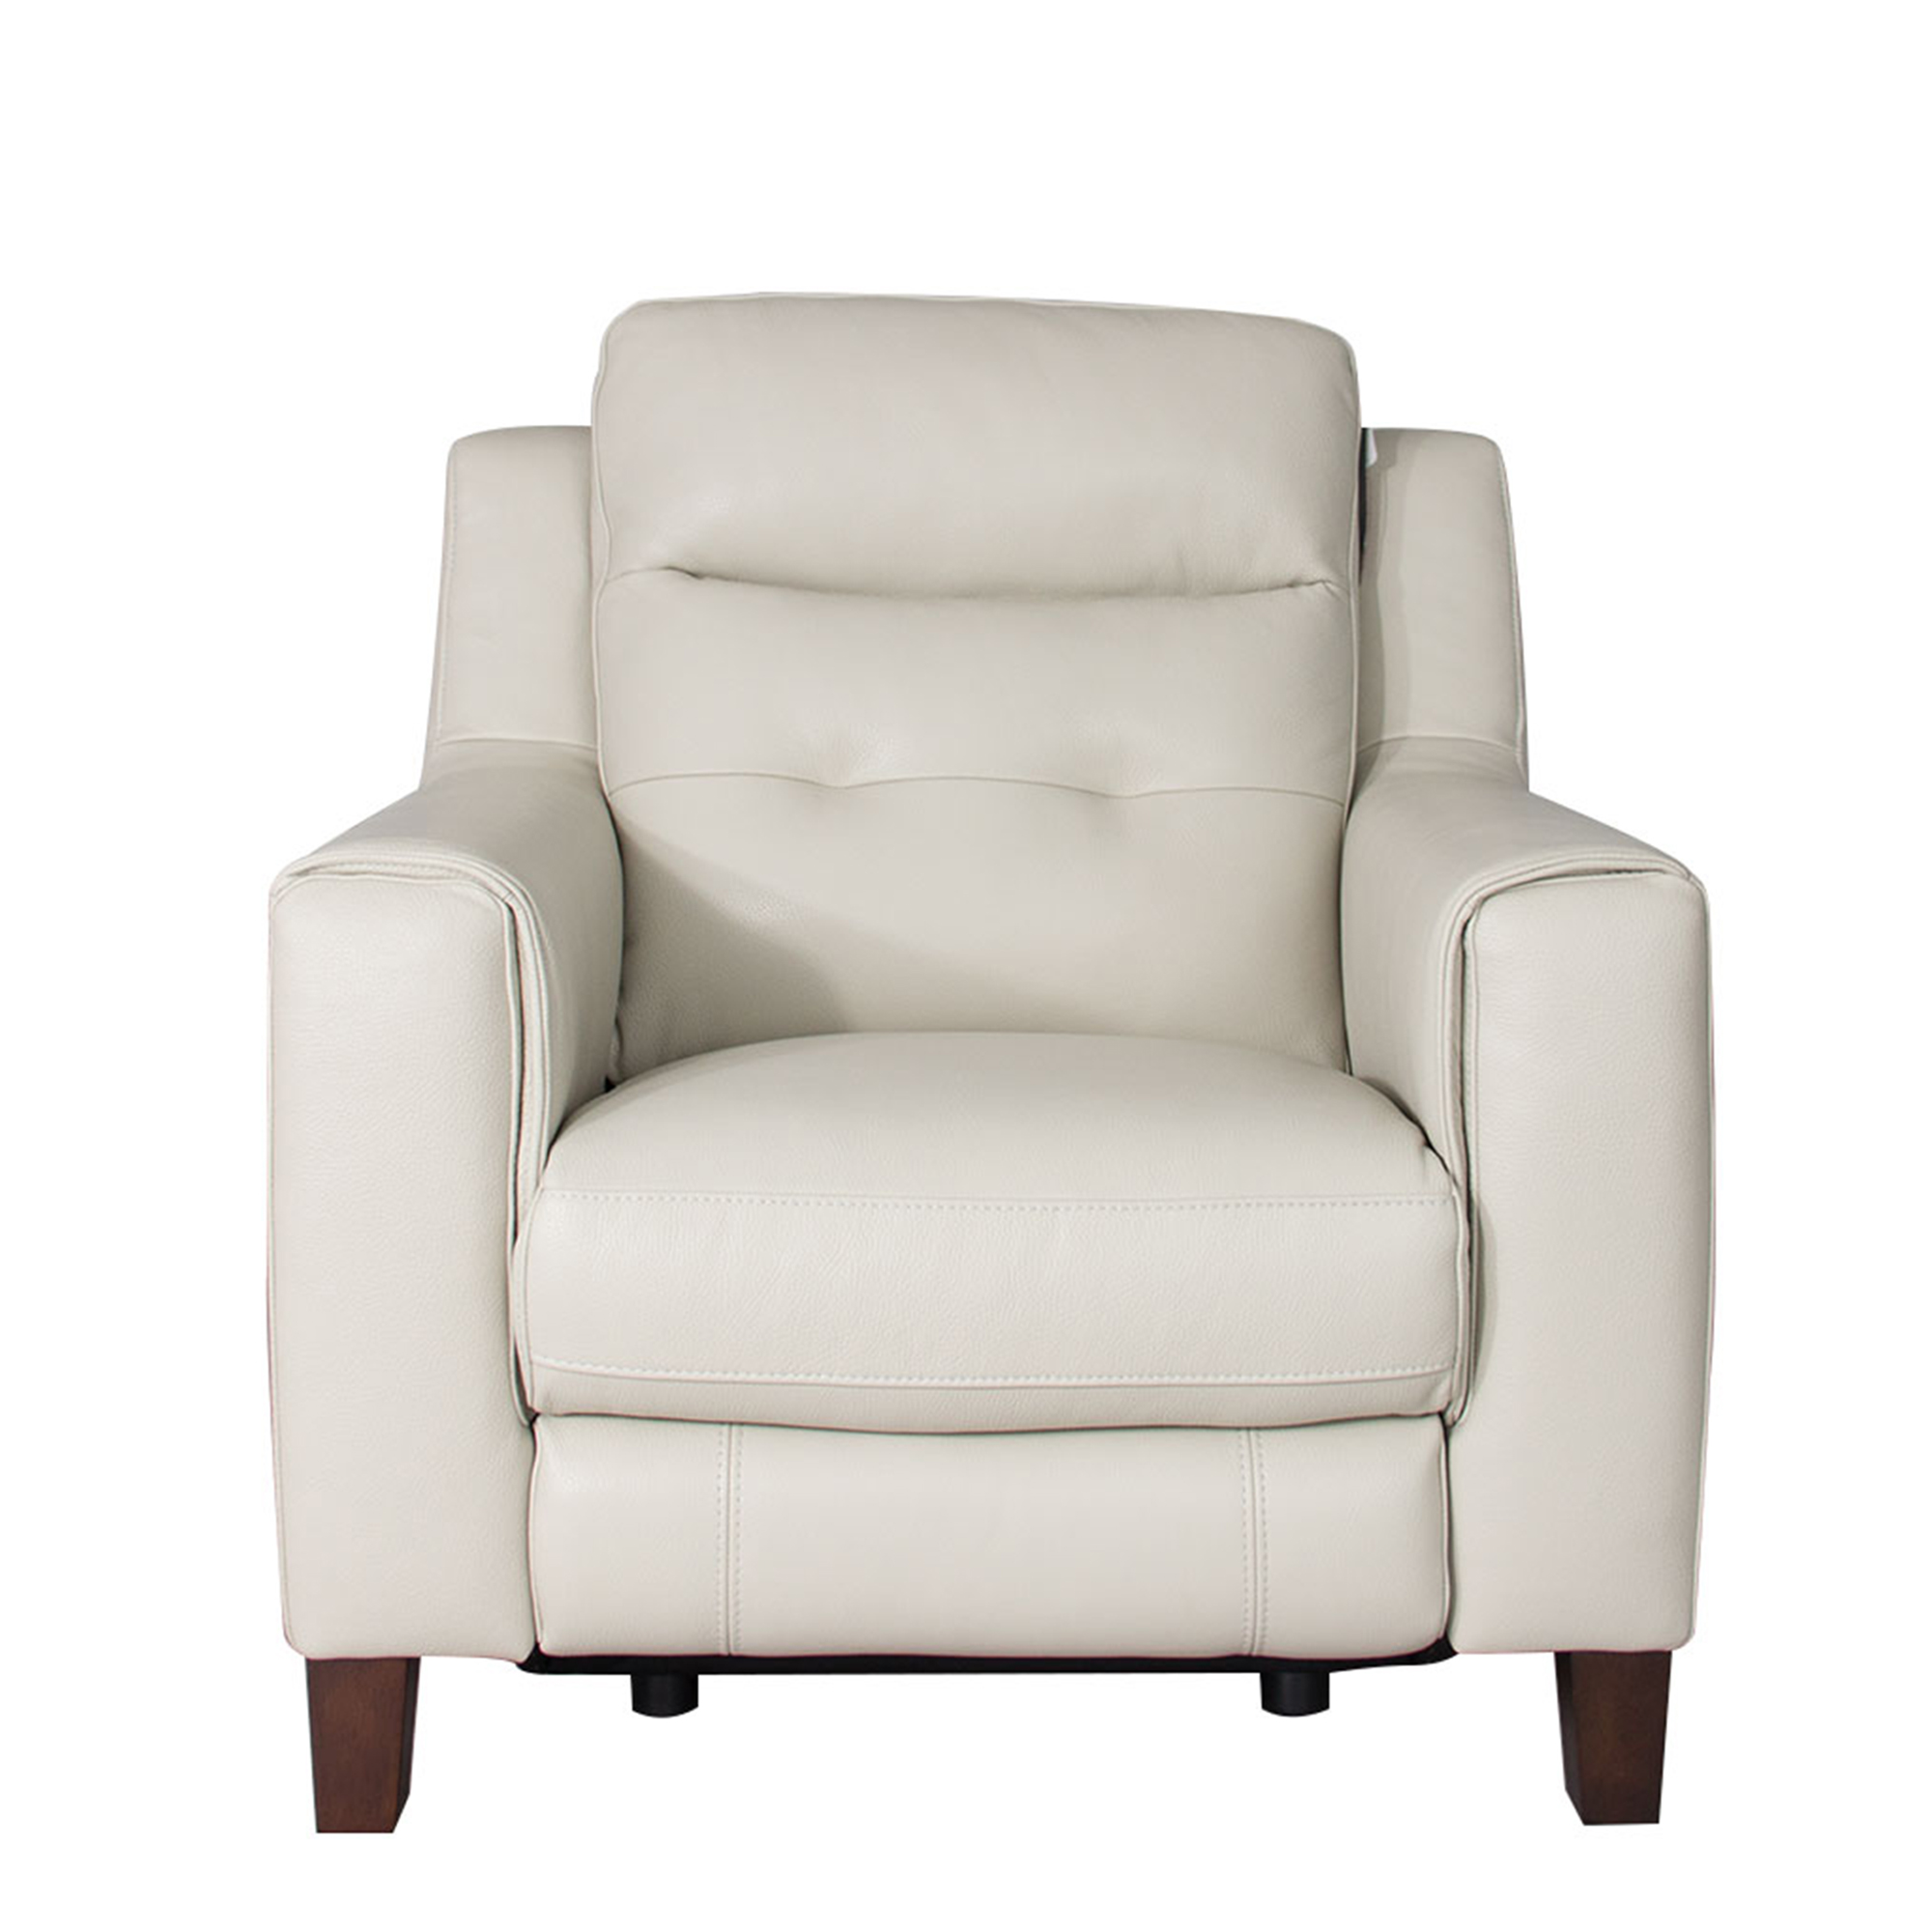 Caserta Power Recliner Chair In Leather Leather Corner Sofas Fishpools